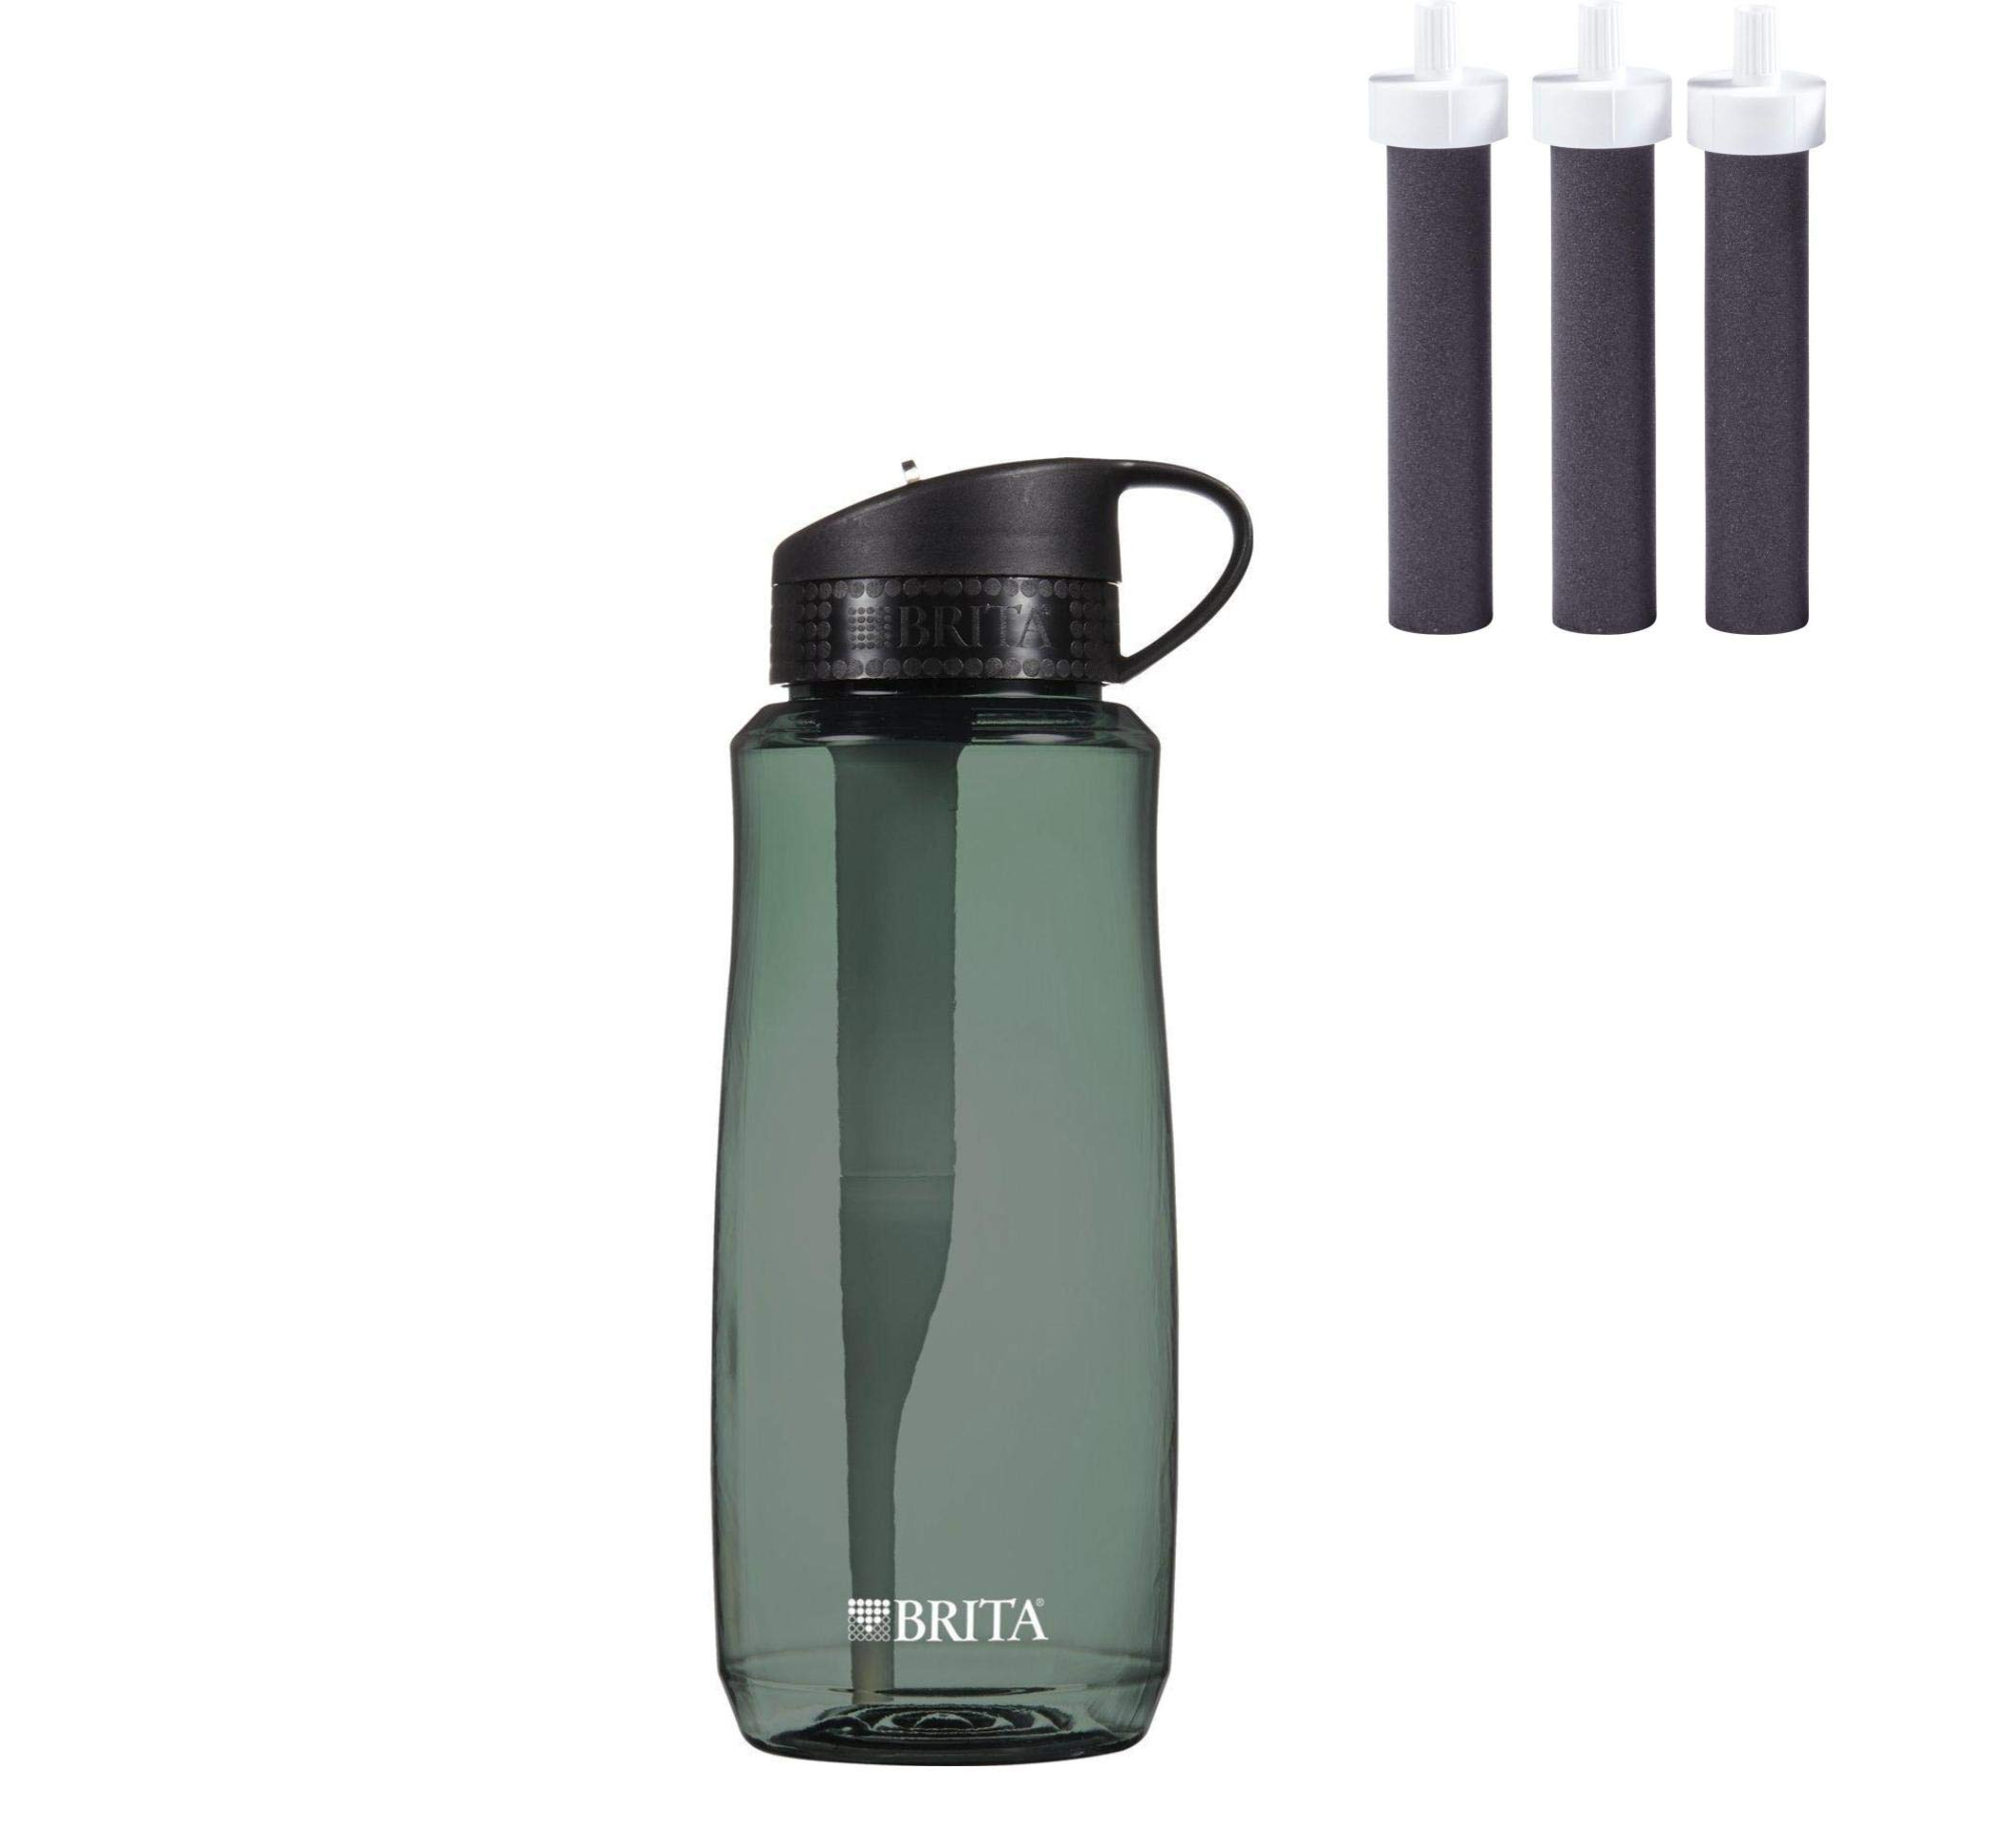 34 Ounce Hard Sided Water Bottle, BPA Free, Black (Water Bottle with 3 Filters)